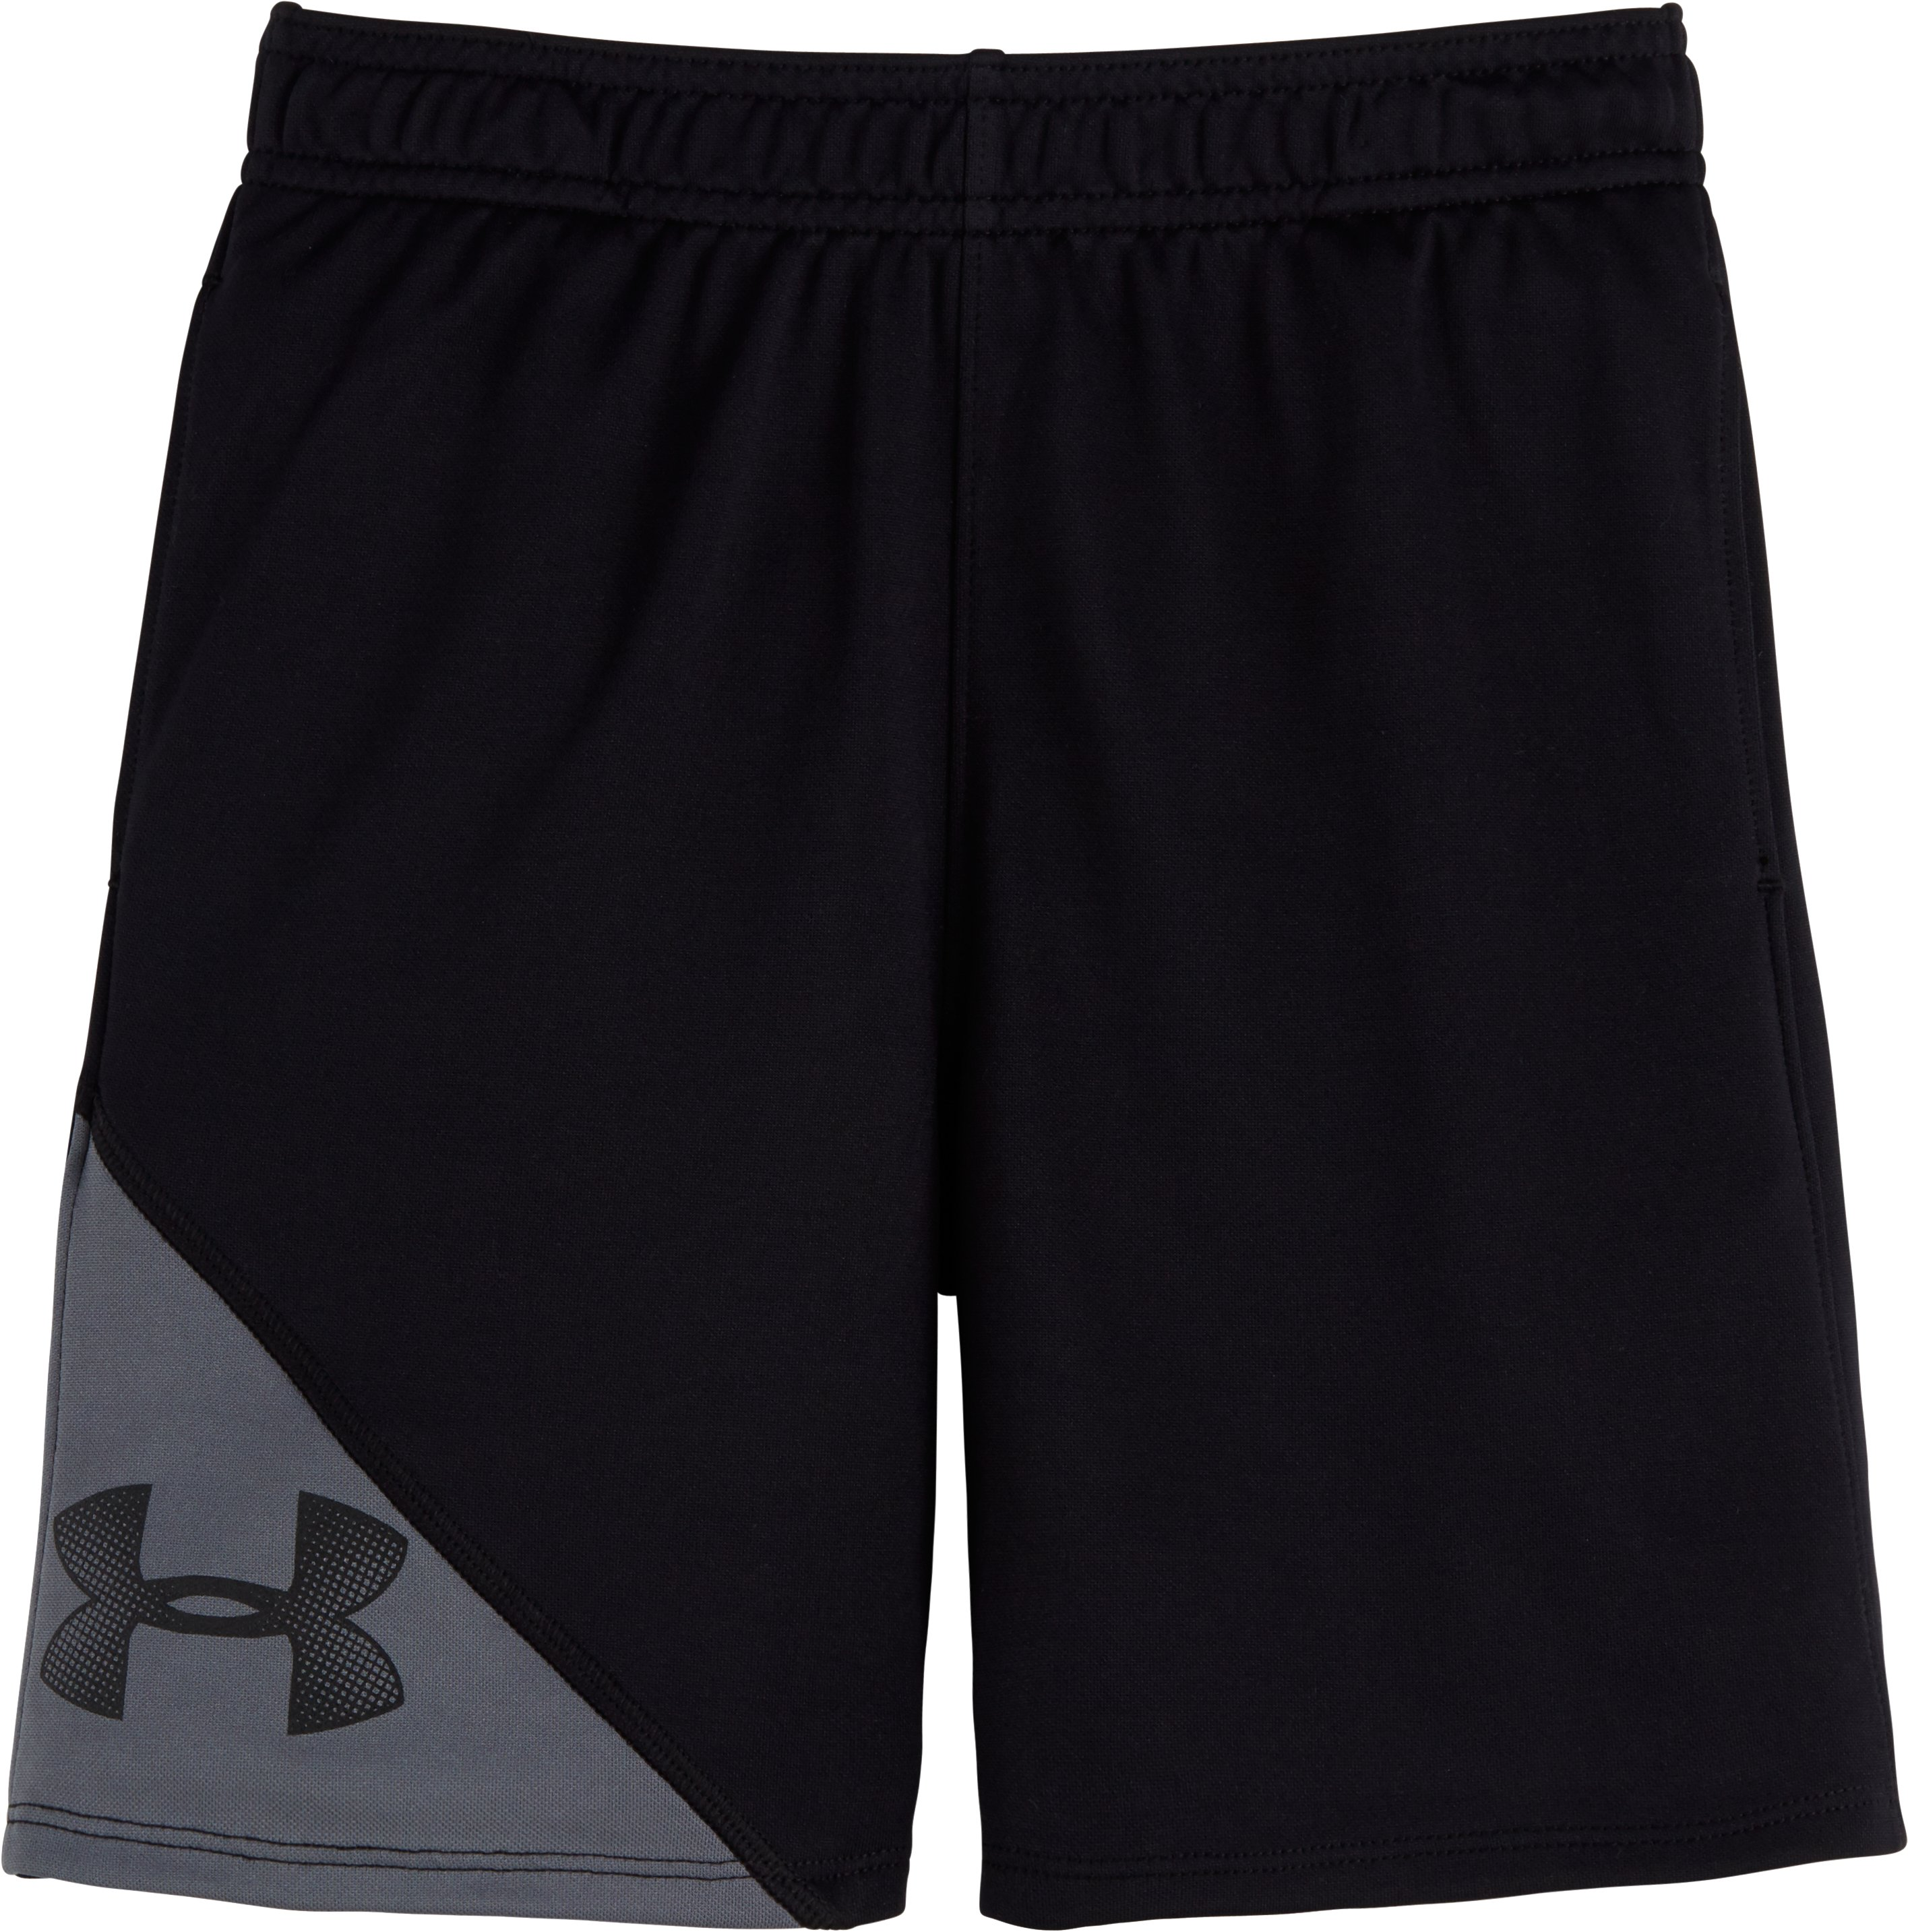 Boys' Pre-School UA Prototype Shorts, Black , Laydown